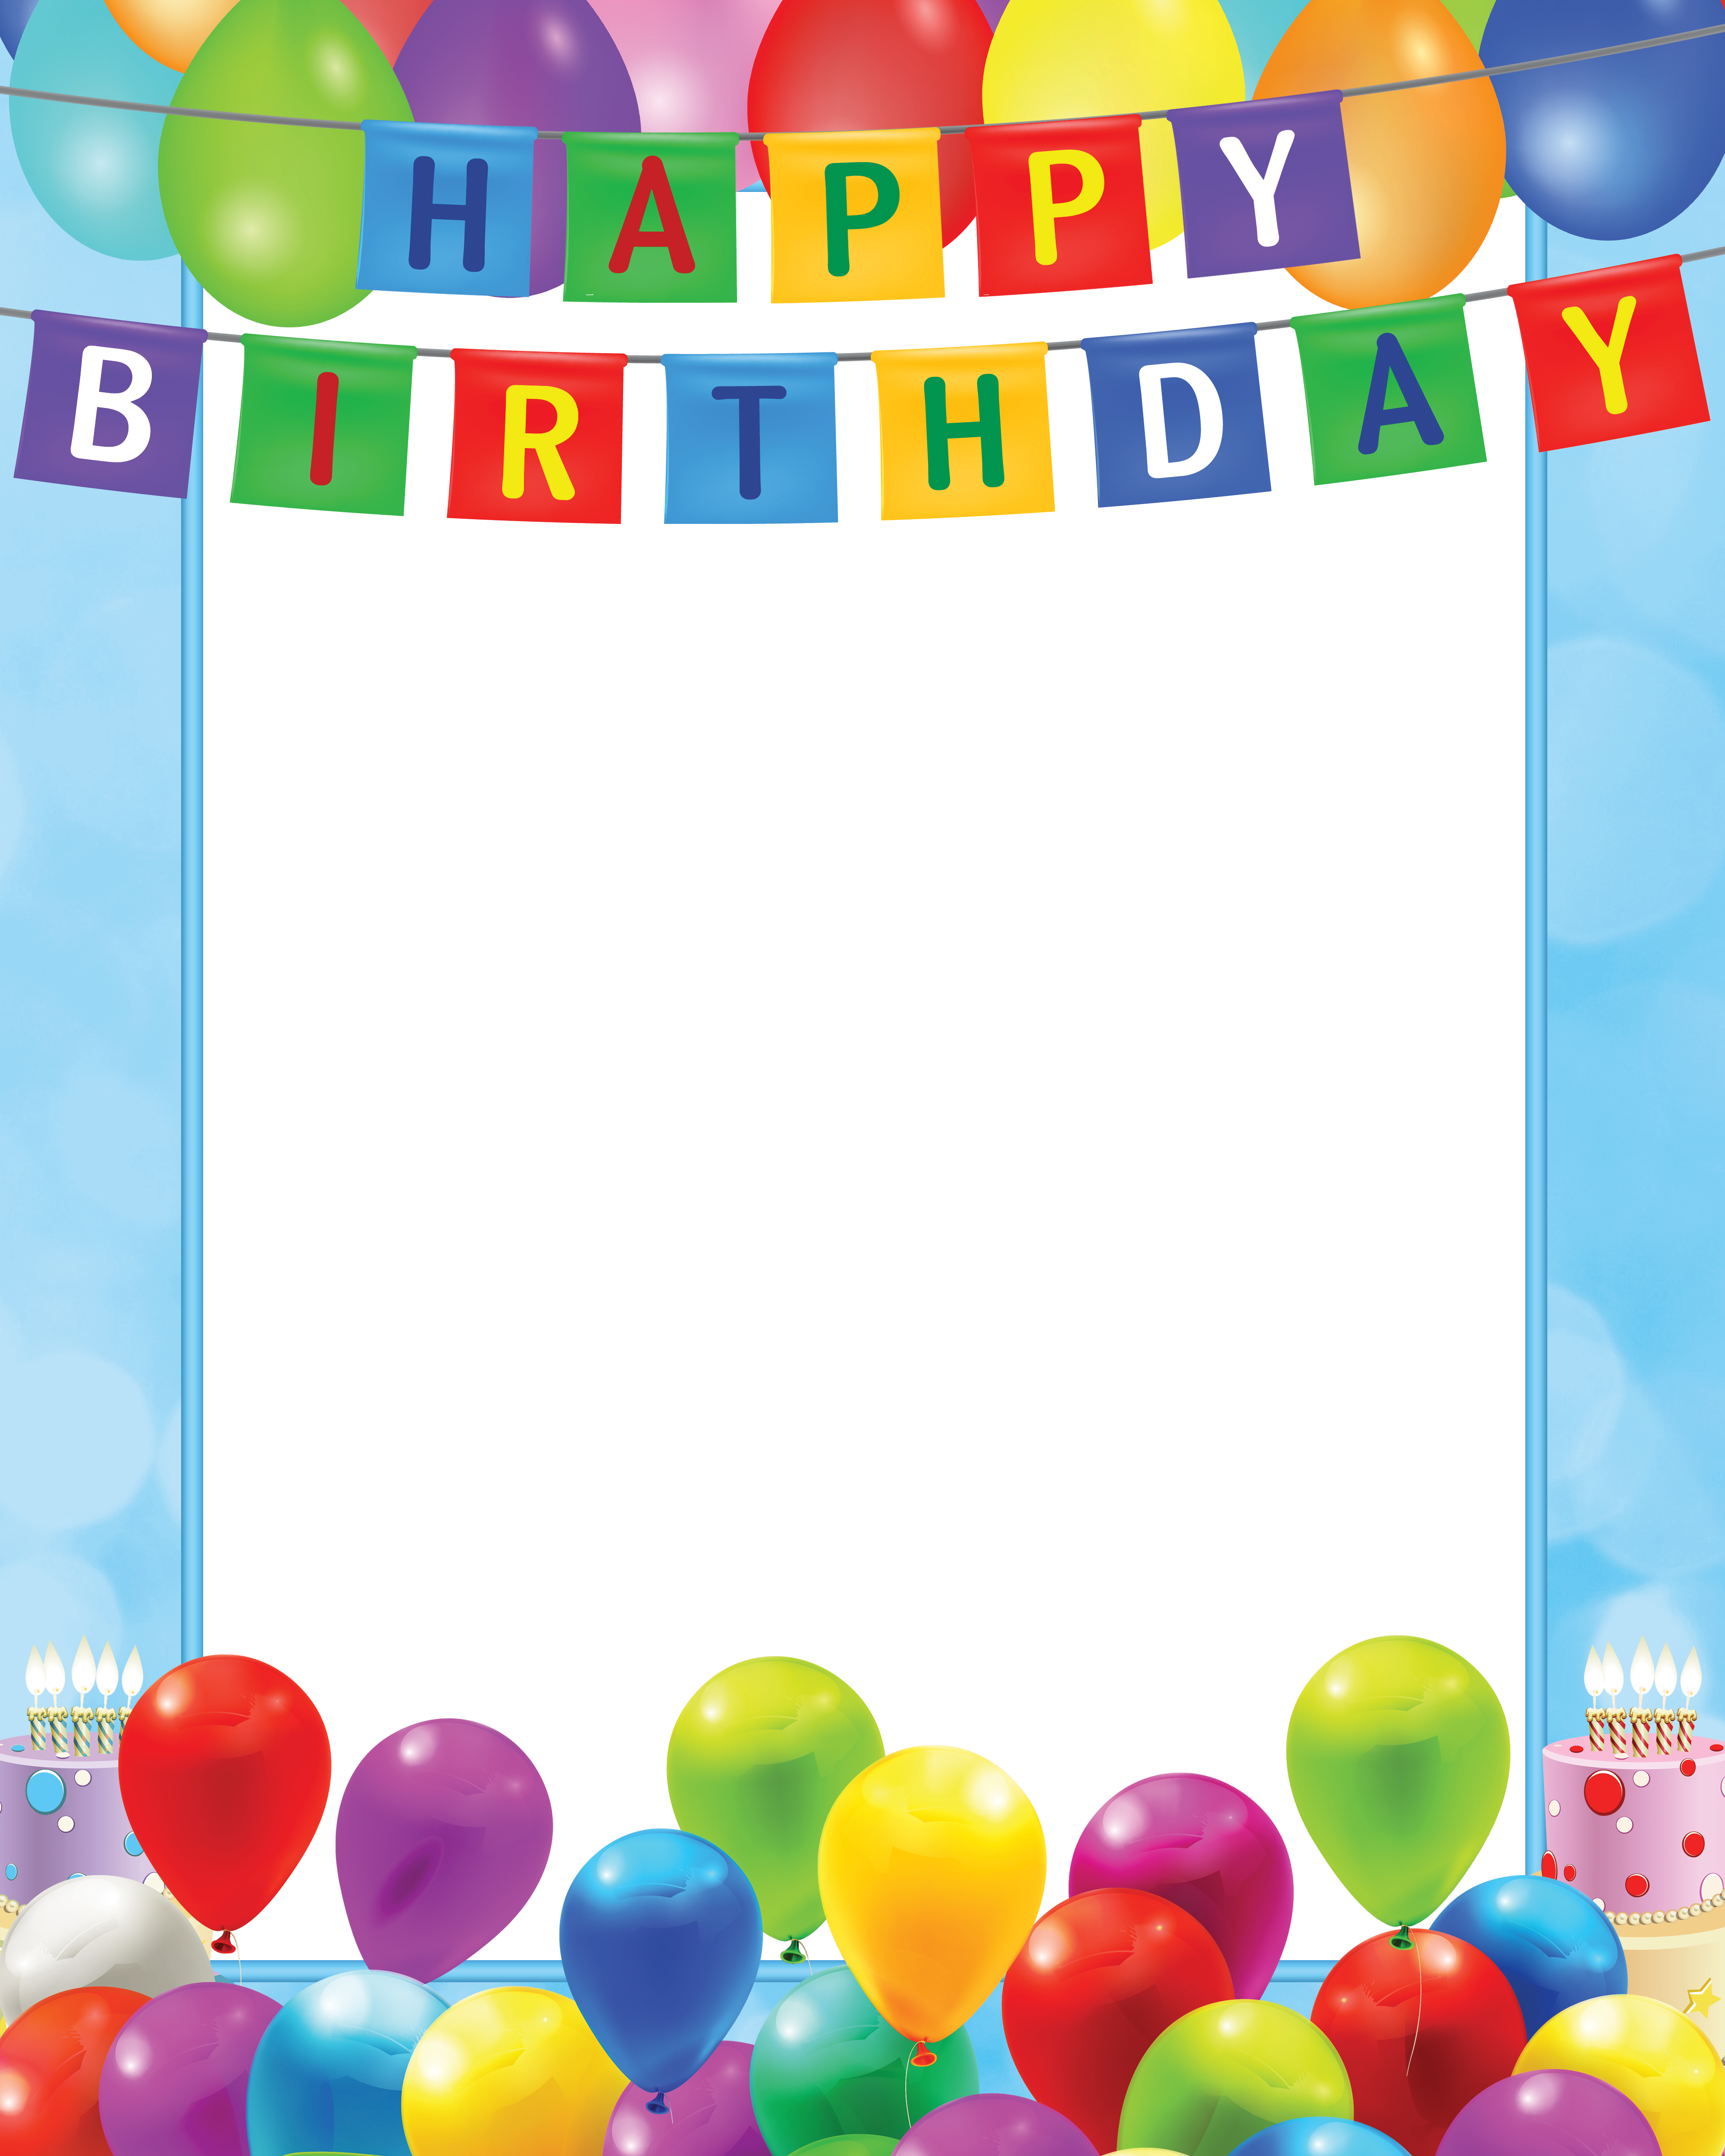 Birthday borders png. Happy transparent blue frame